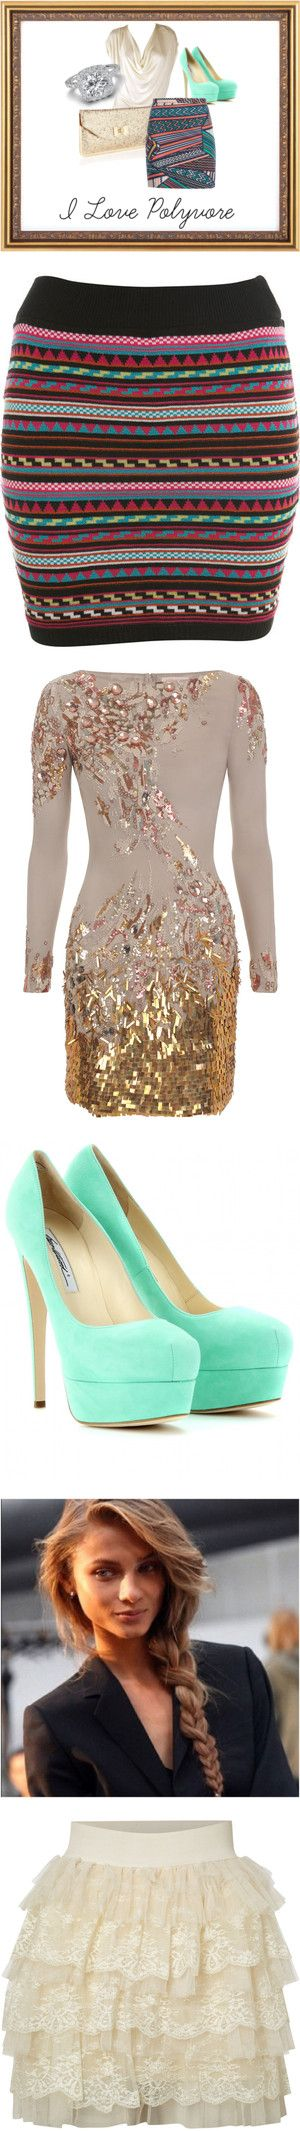 """Samantha"" by rylie77 on Polyvore"